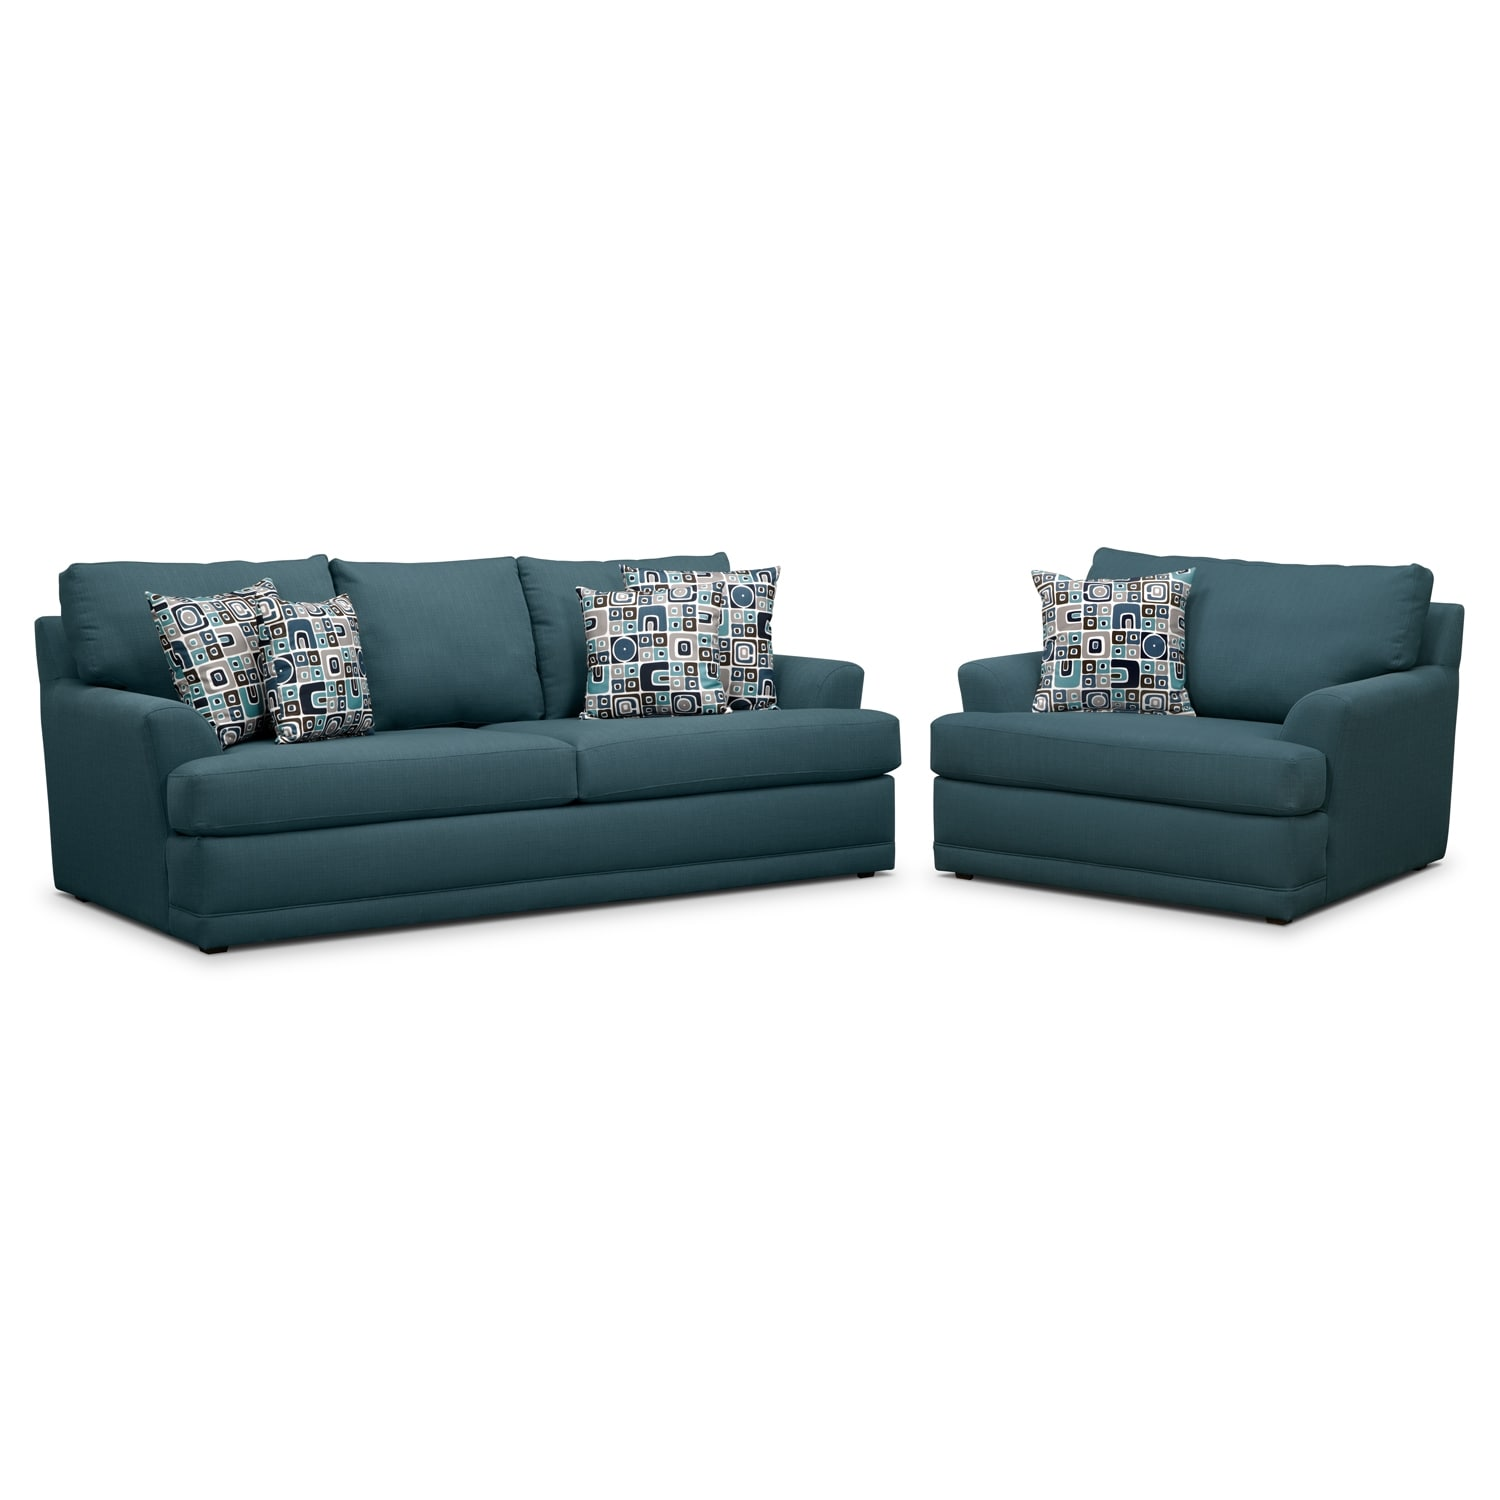 Kismet Sofa and Chair and a Half Set - Teal